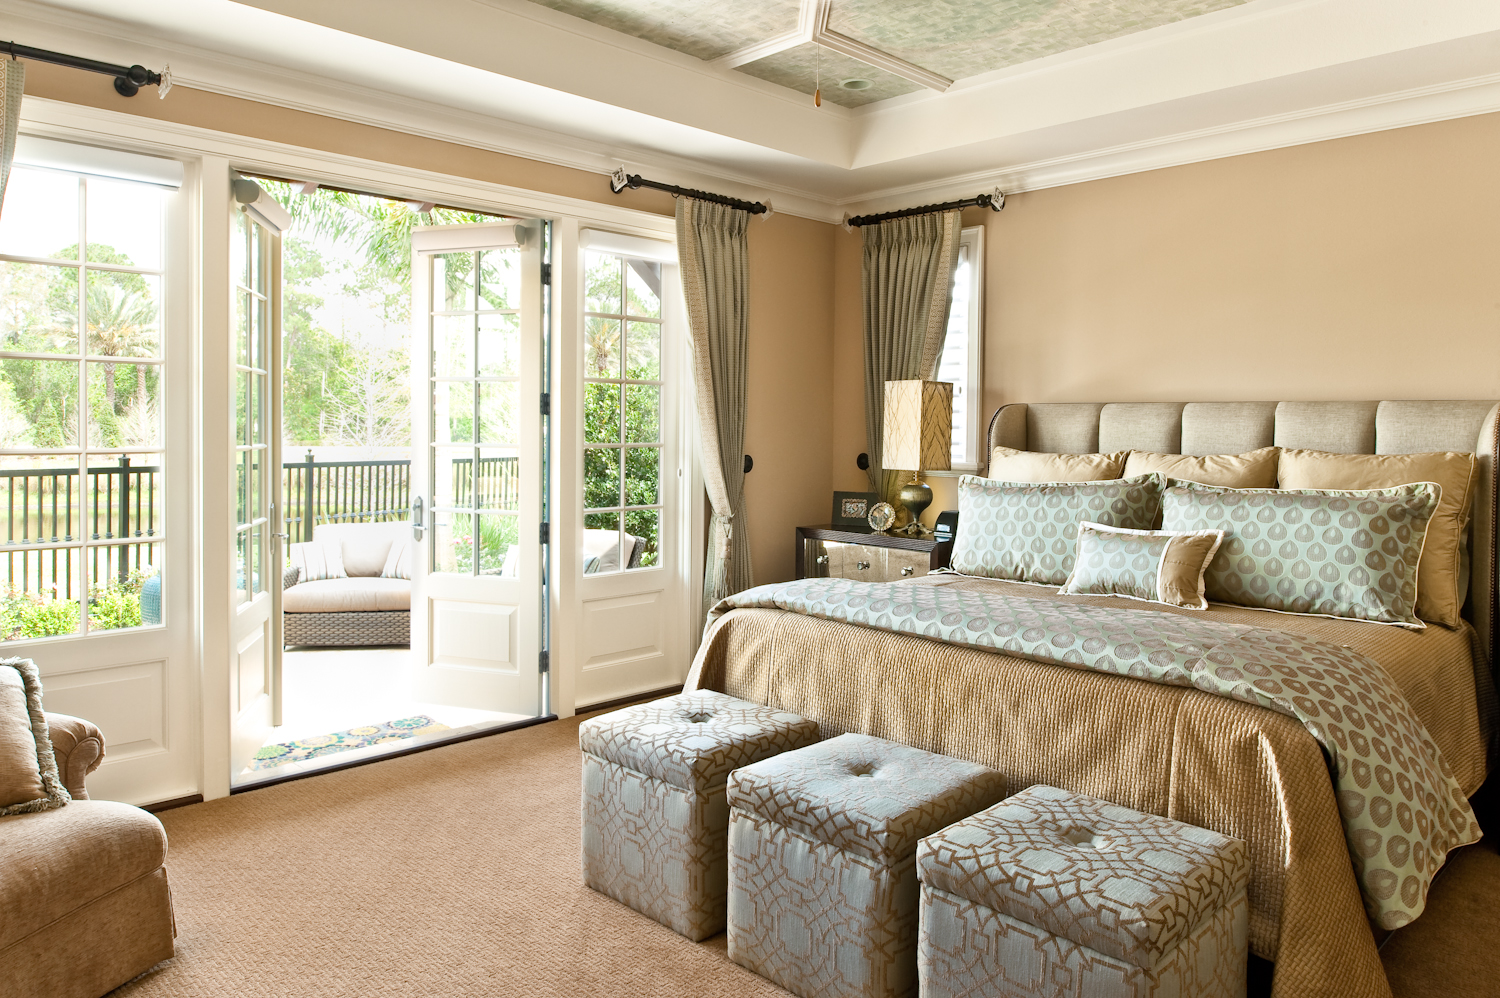 Mgm Signature One Bedroom Balcony Suite Floor Plan Bedroom Balcony Designs Home Design Ideas 58 Custom Luxury Master